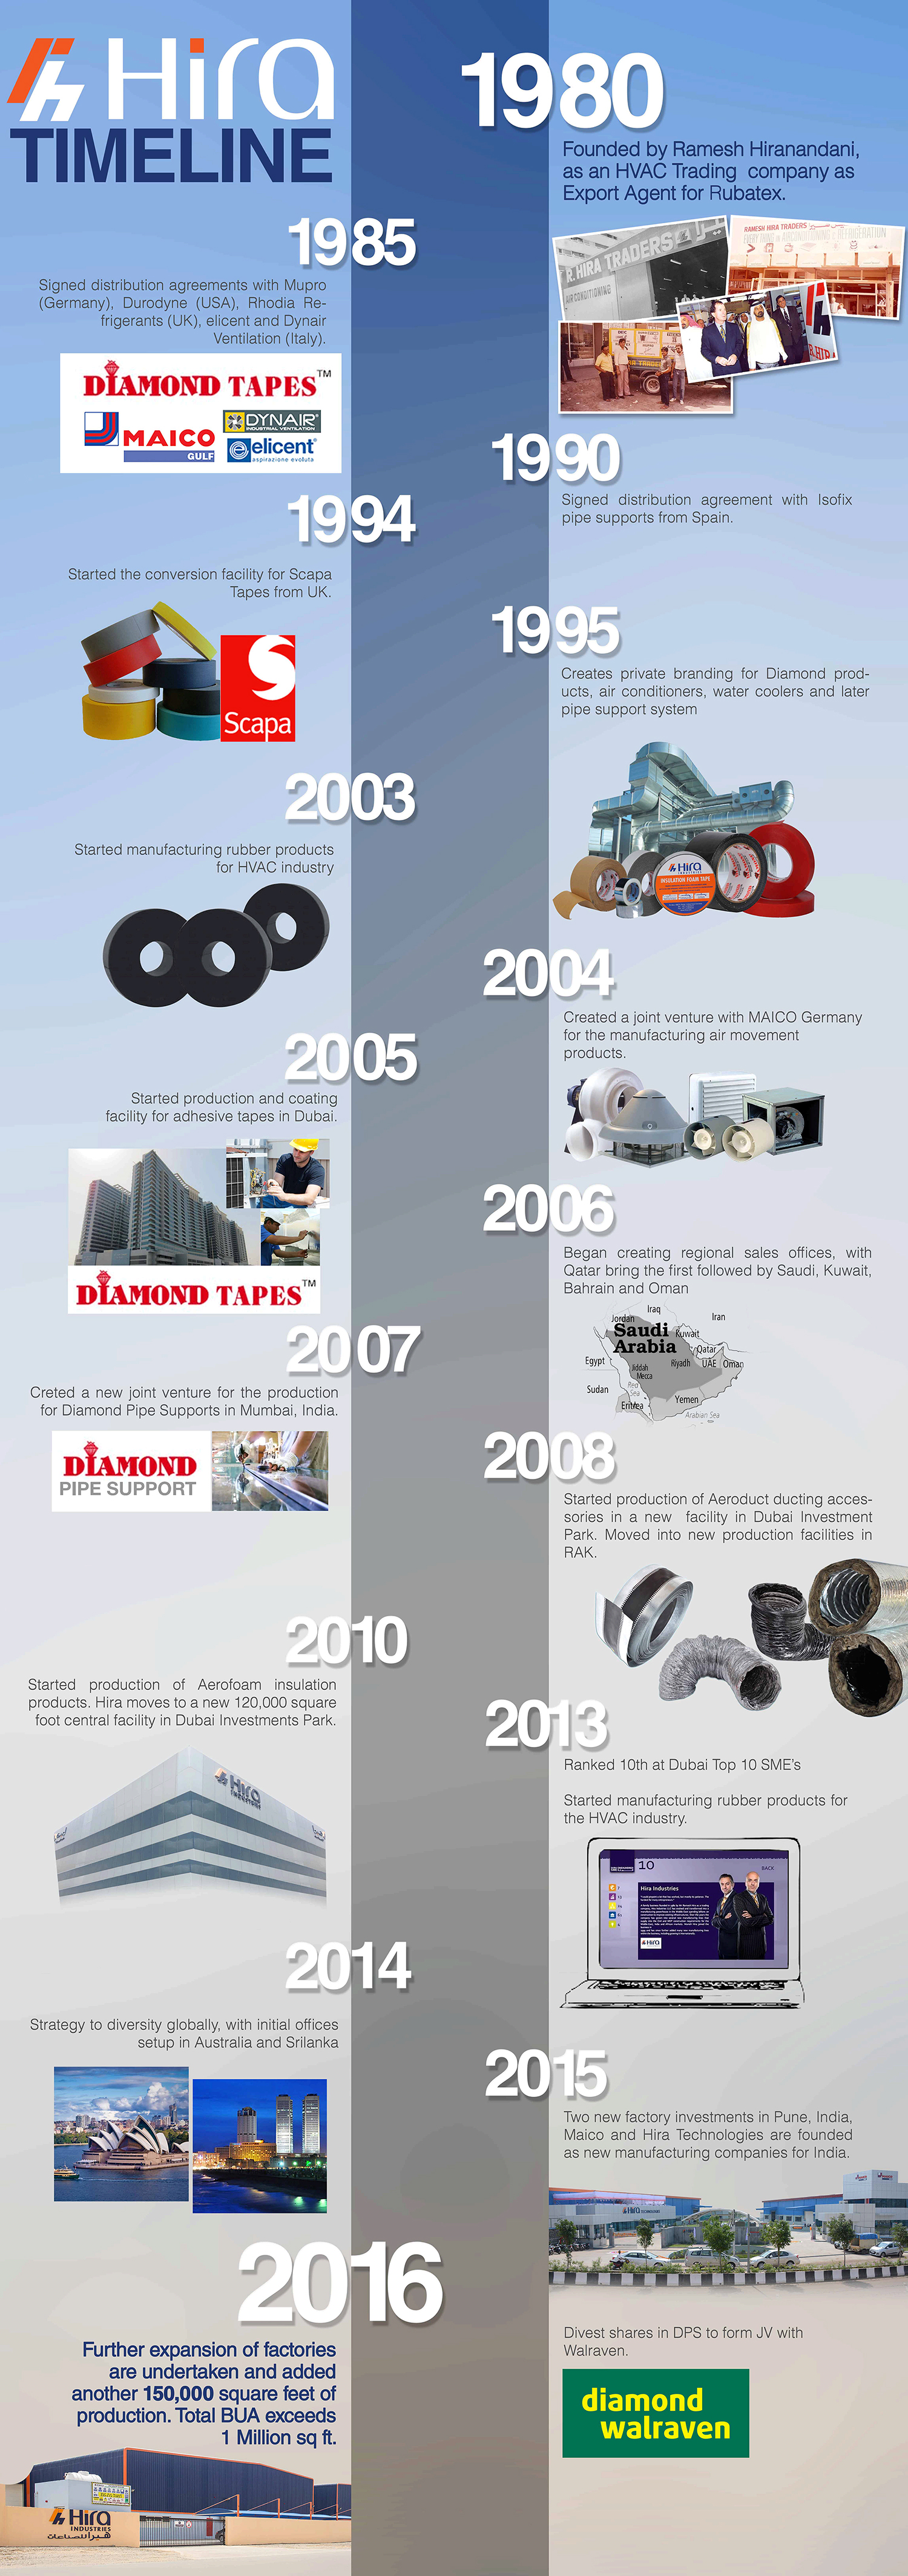 hira-industries-timeline-history